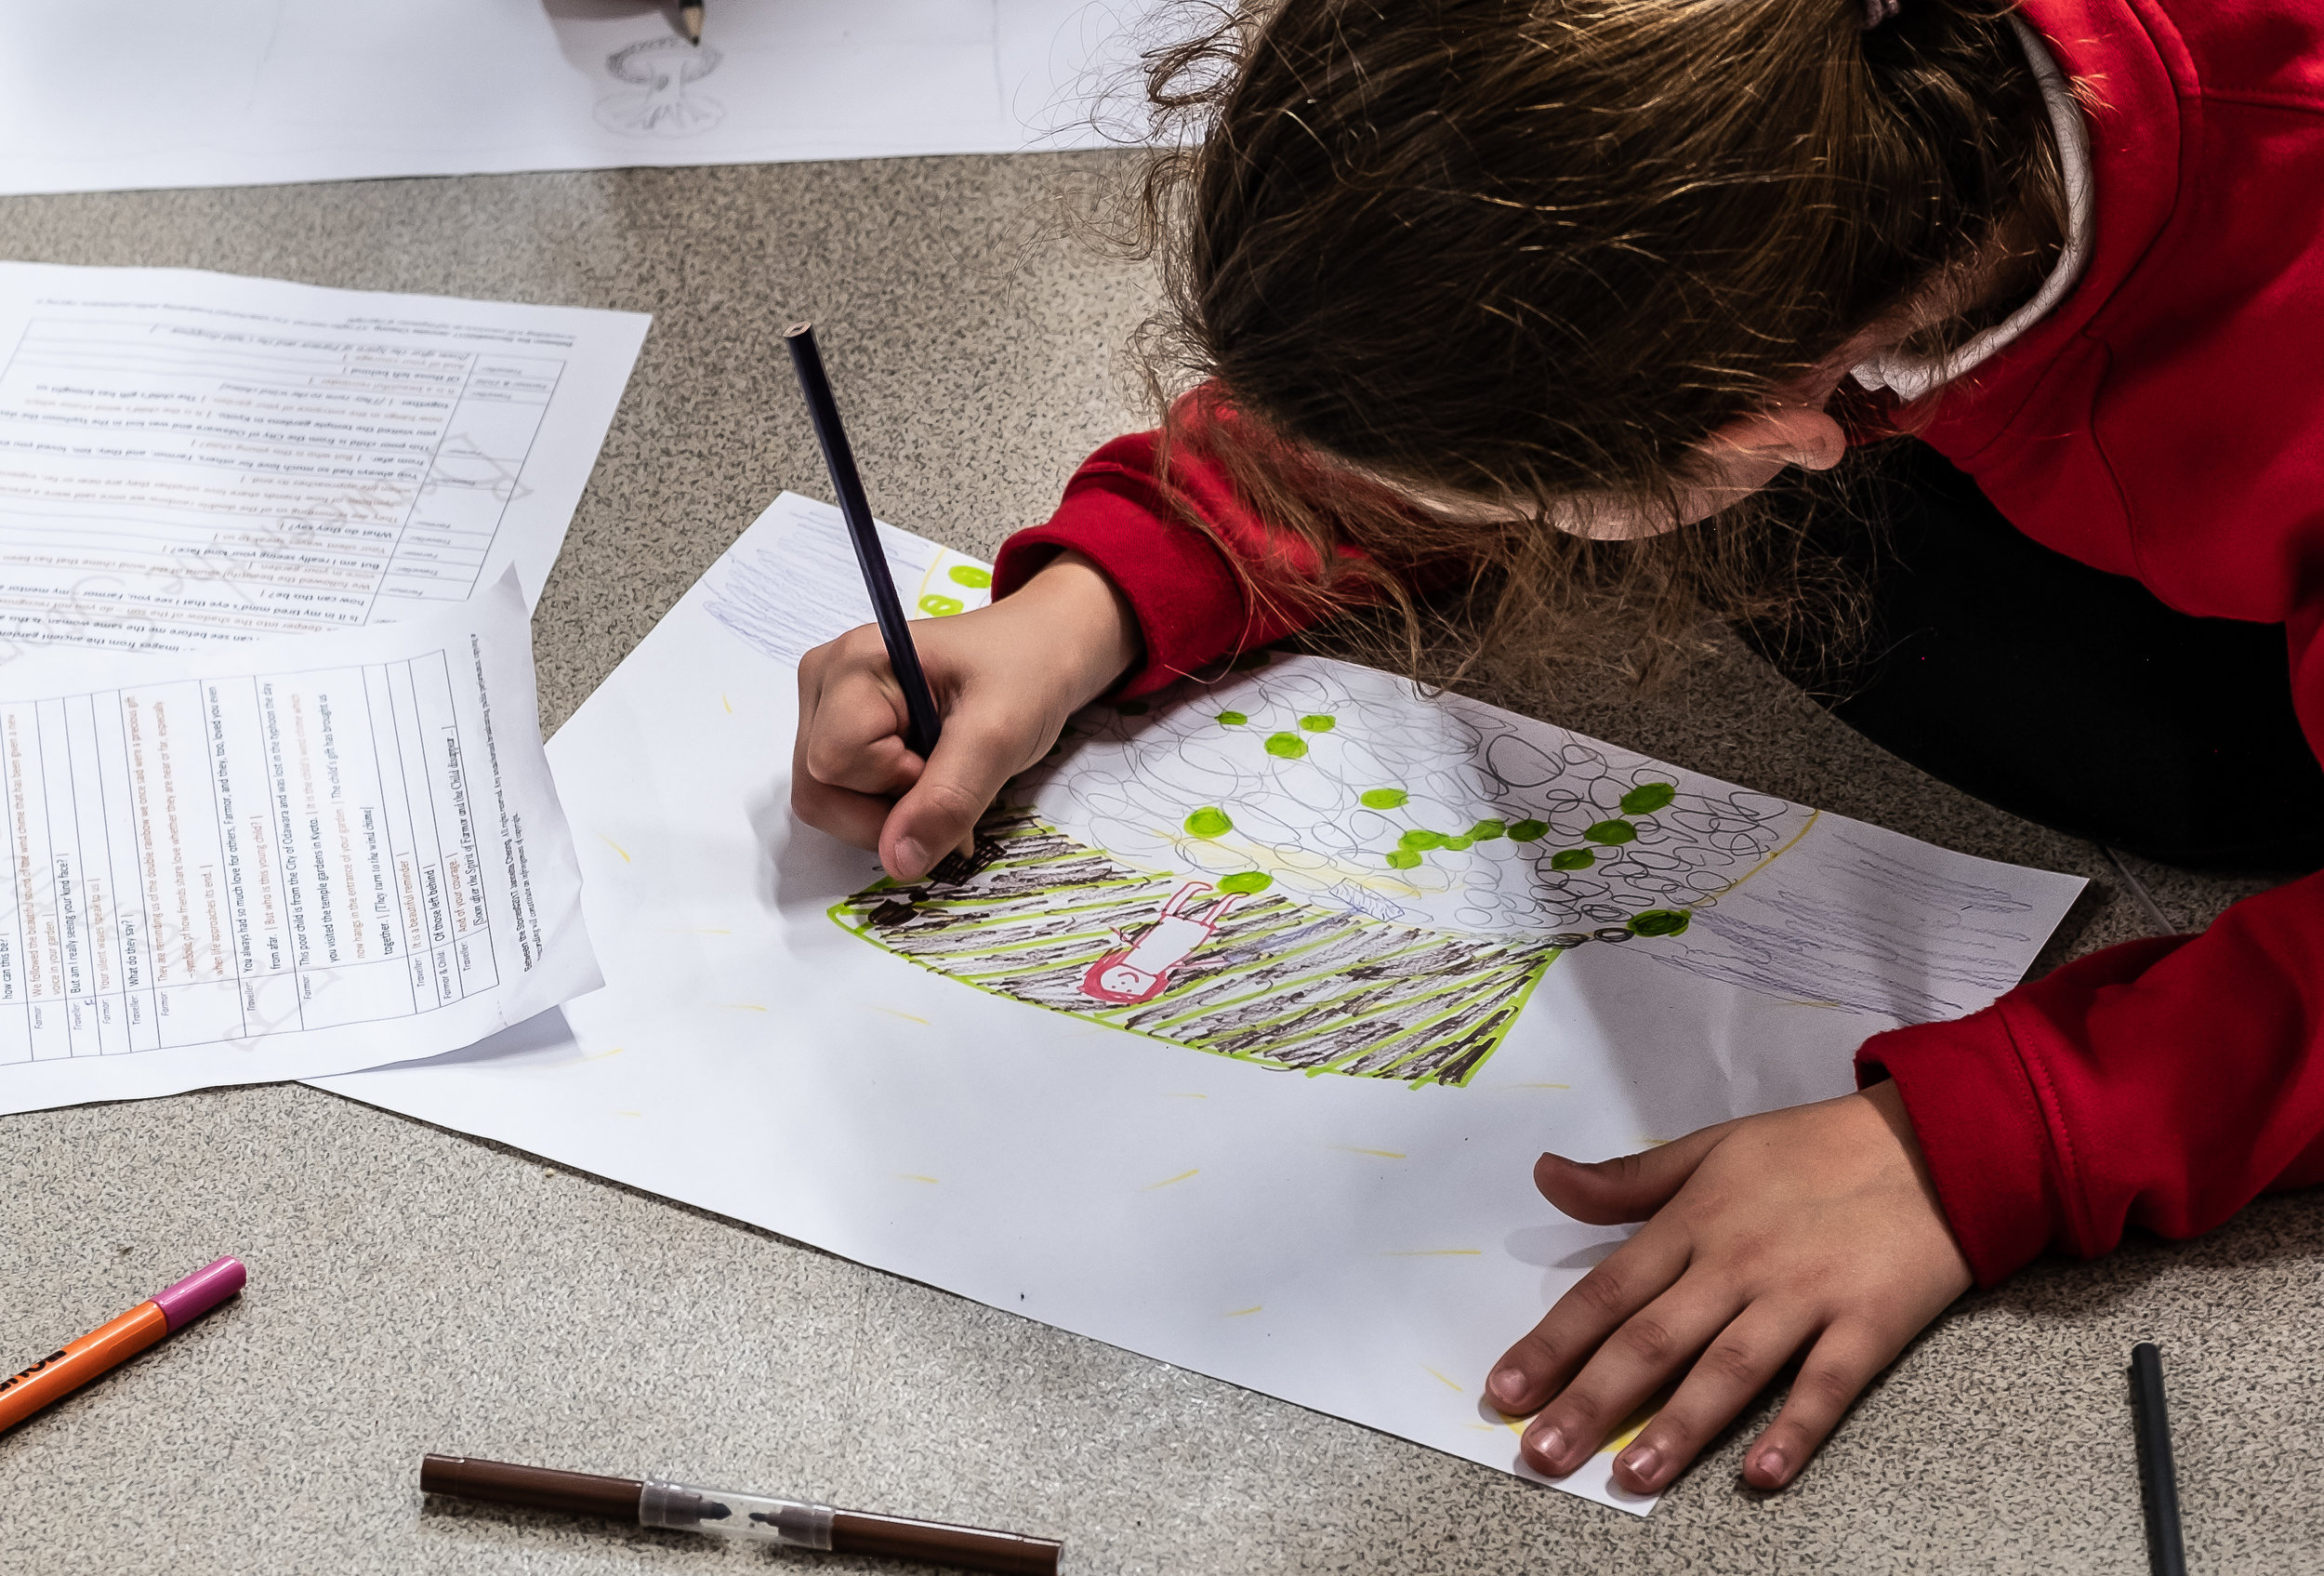 Then, spent time drawing the scene they had been studying...  Photography by Clive Barda